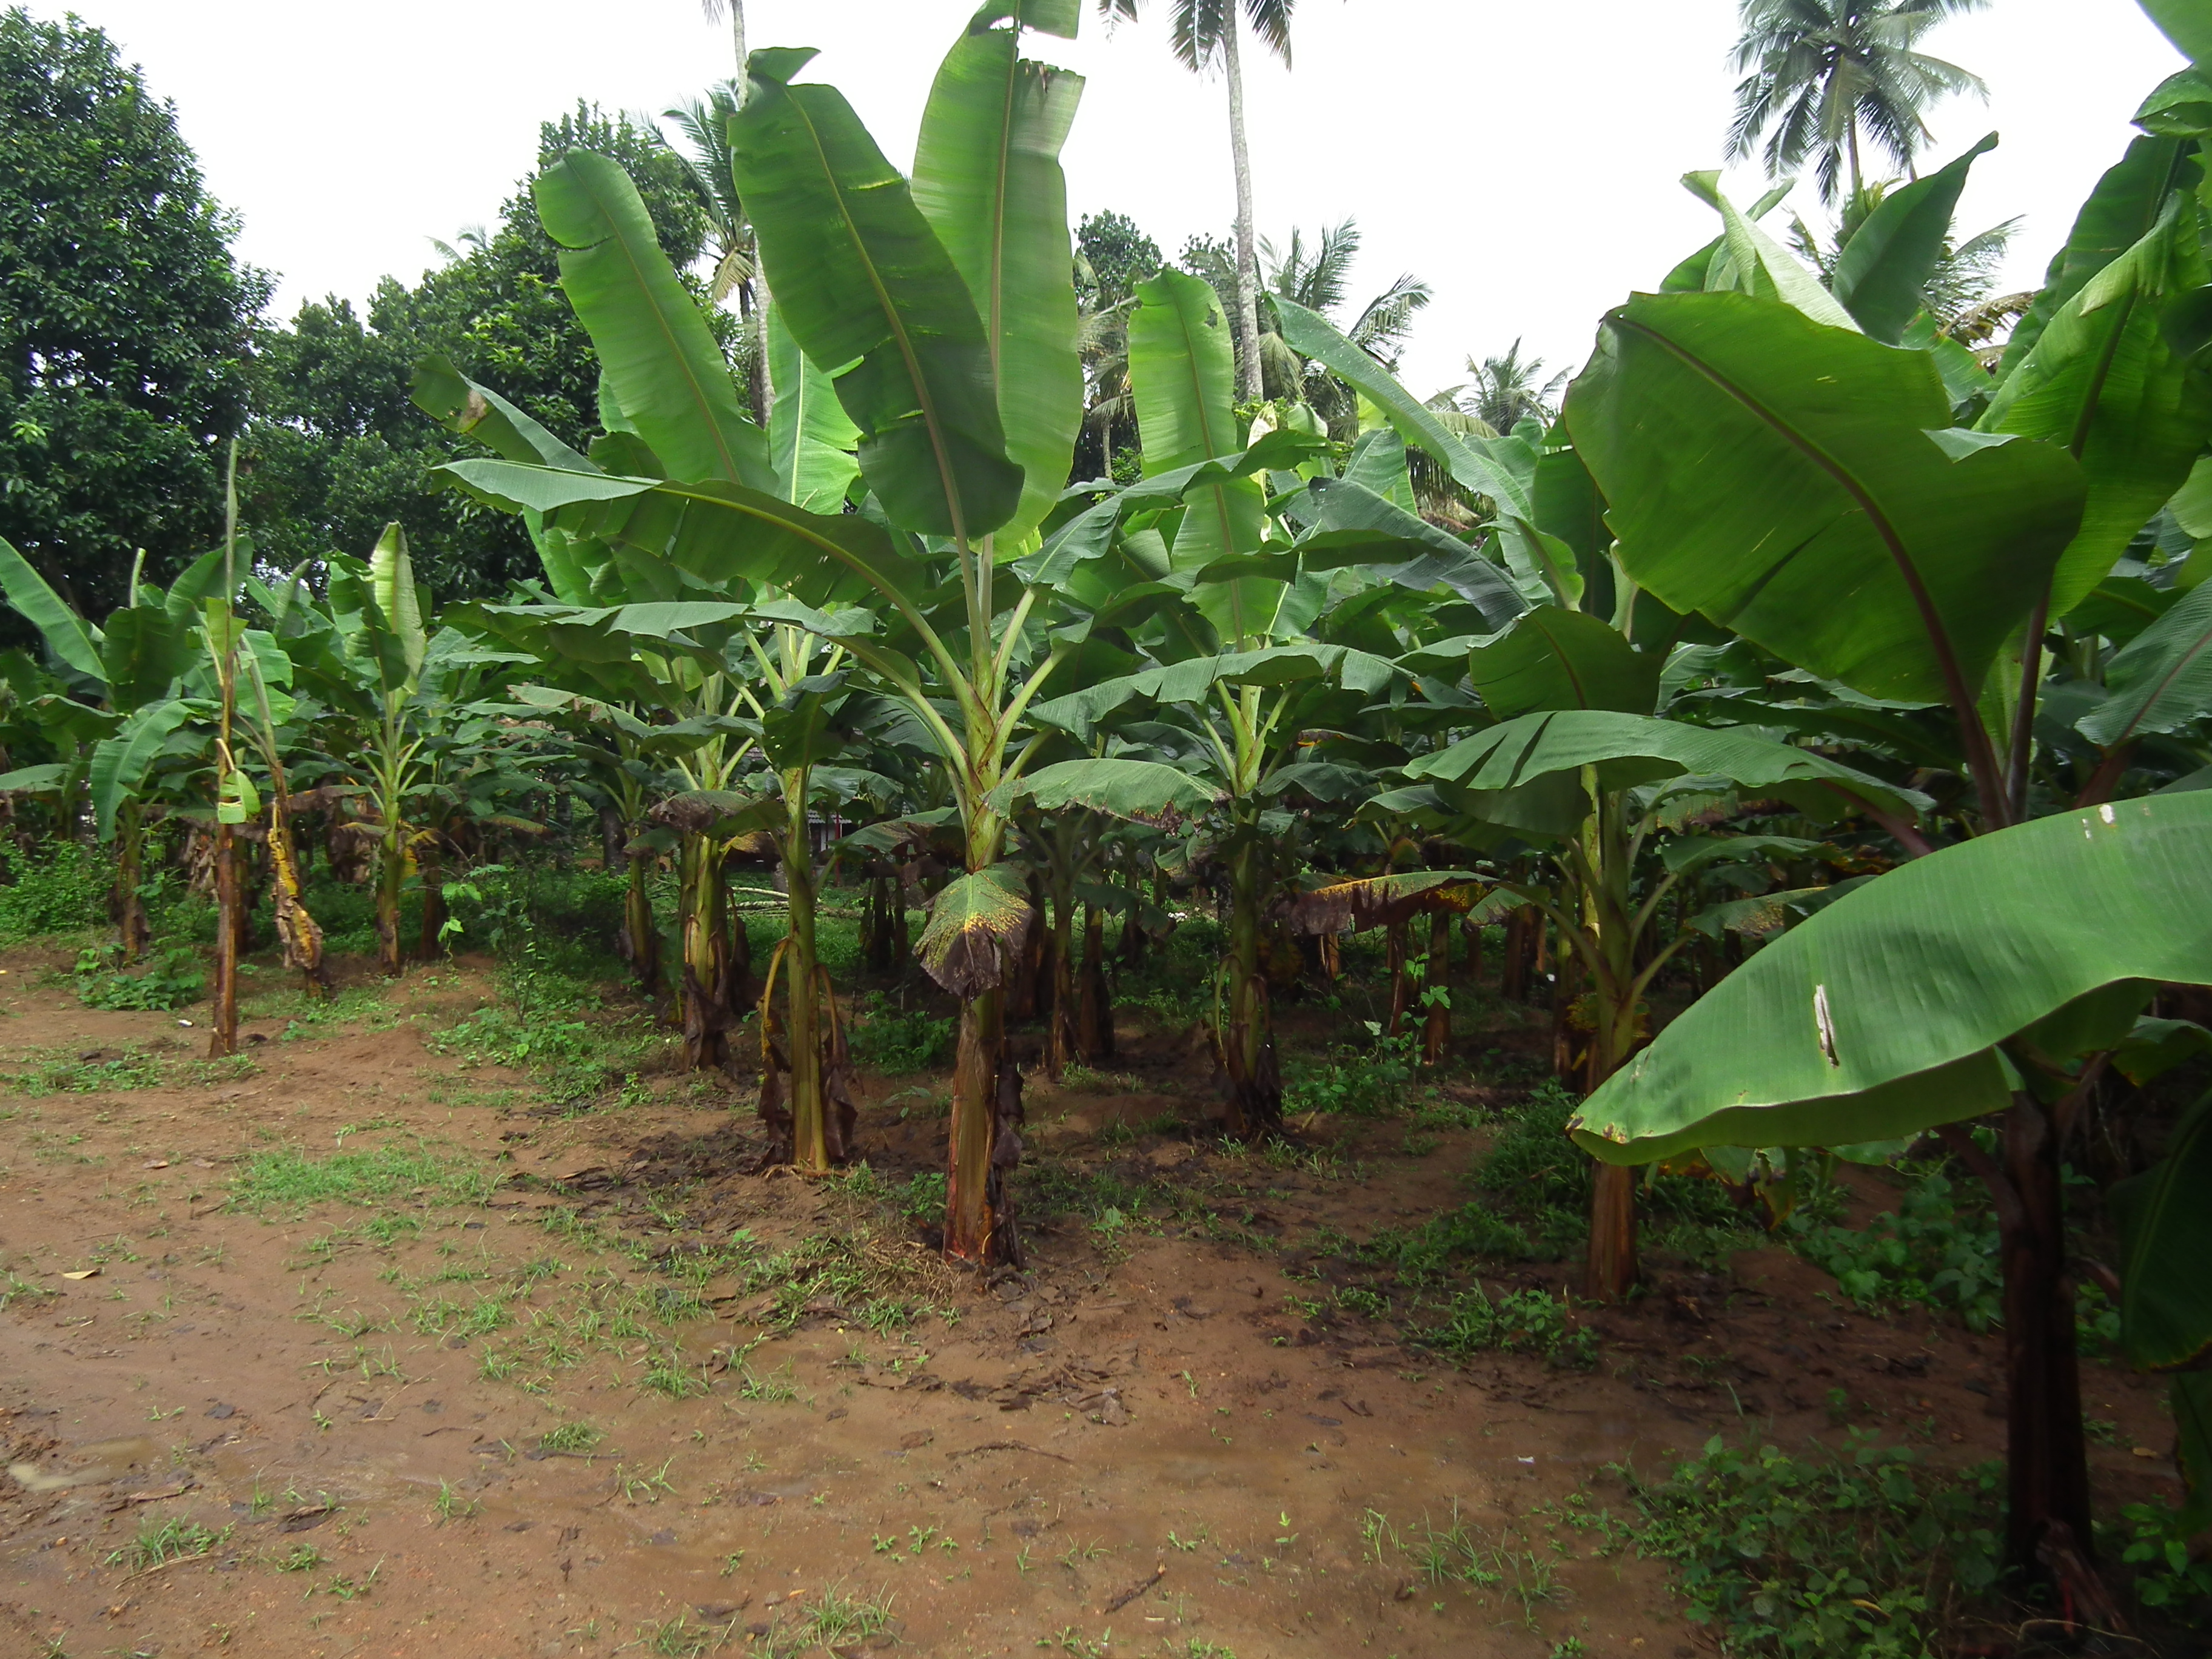 File:Banana Tree from Kerala 5002.JPG